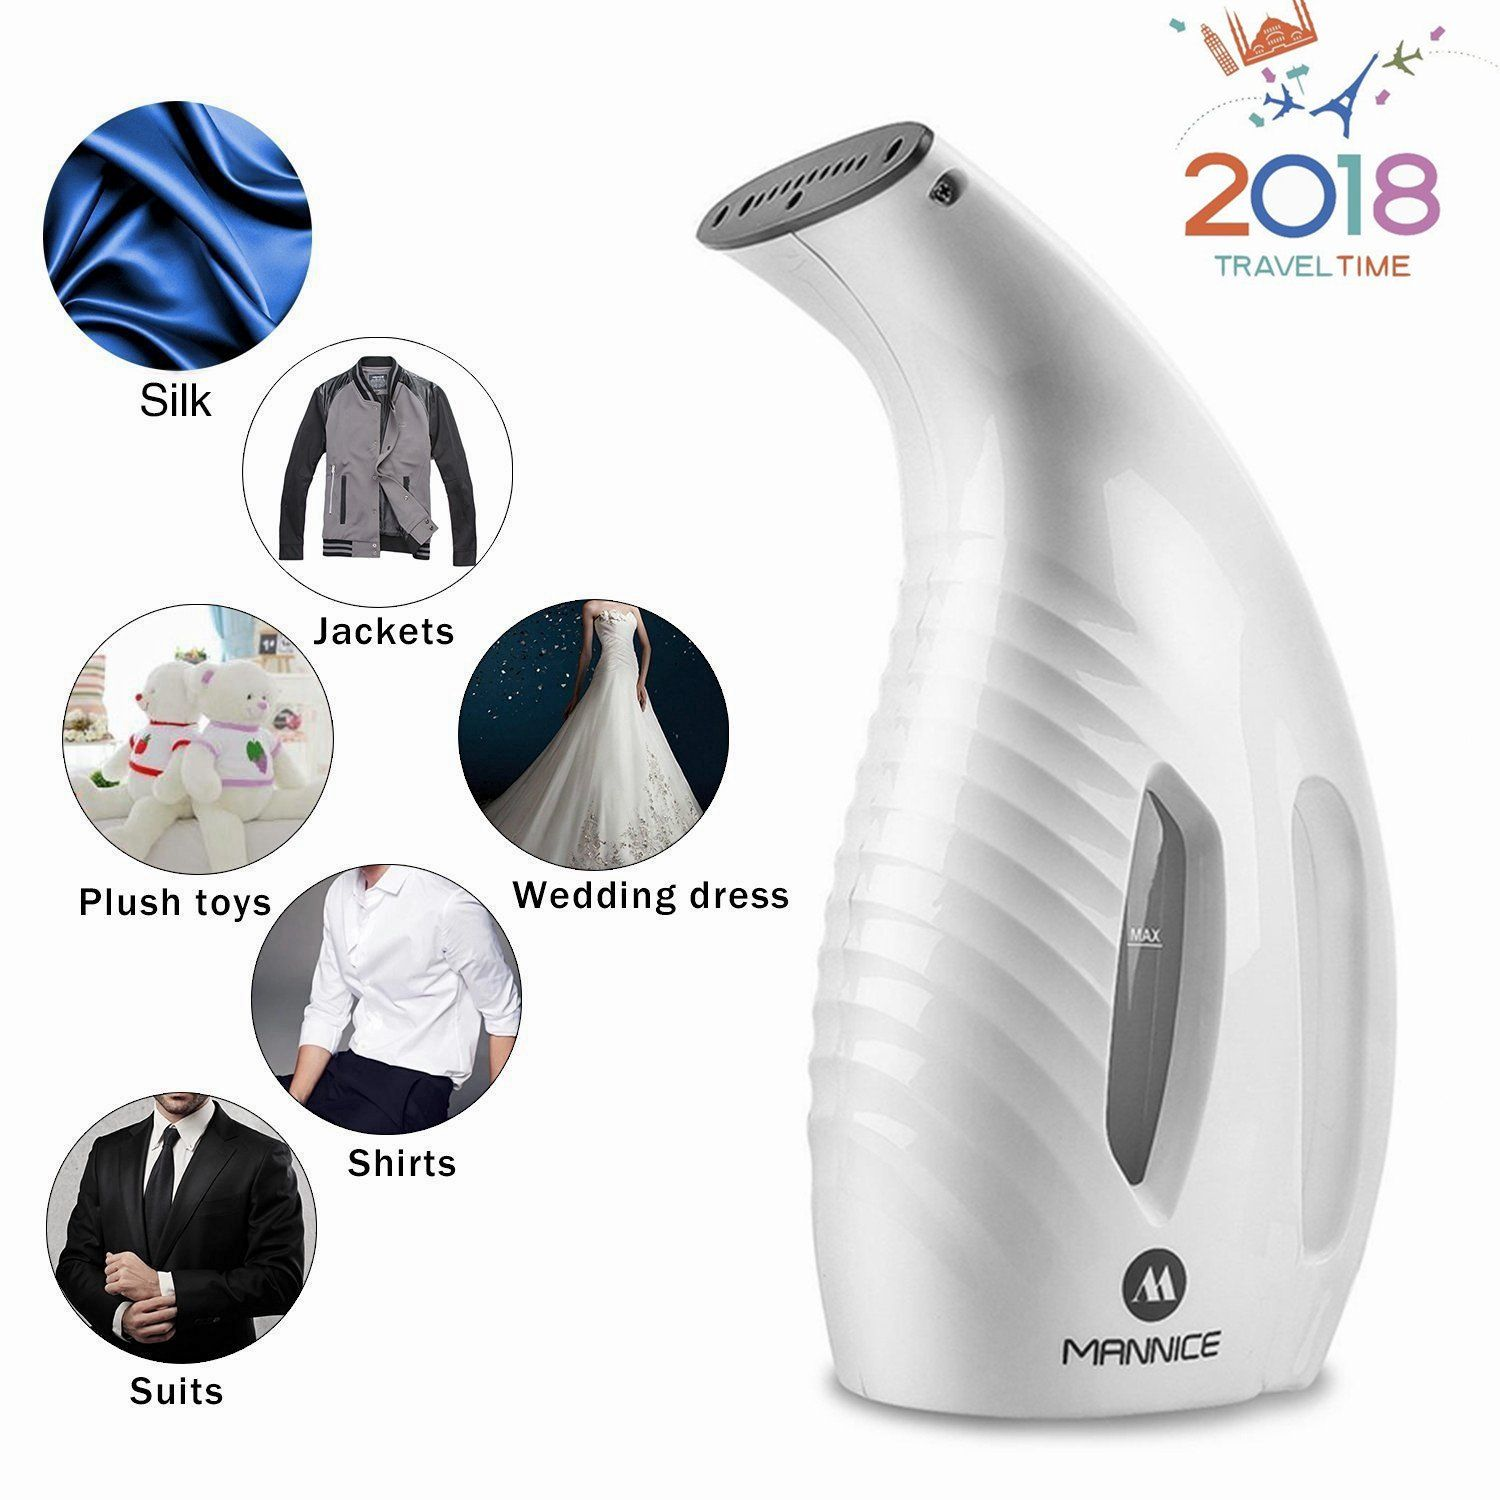 Portable Garment Steamer for Clothes Travel Iron Handheld Fabric